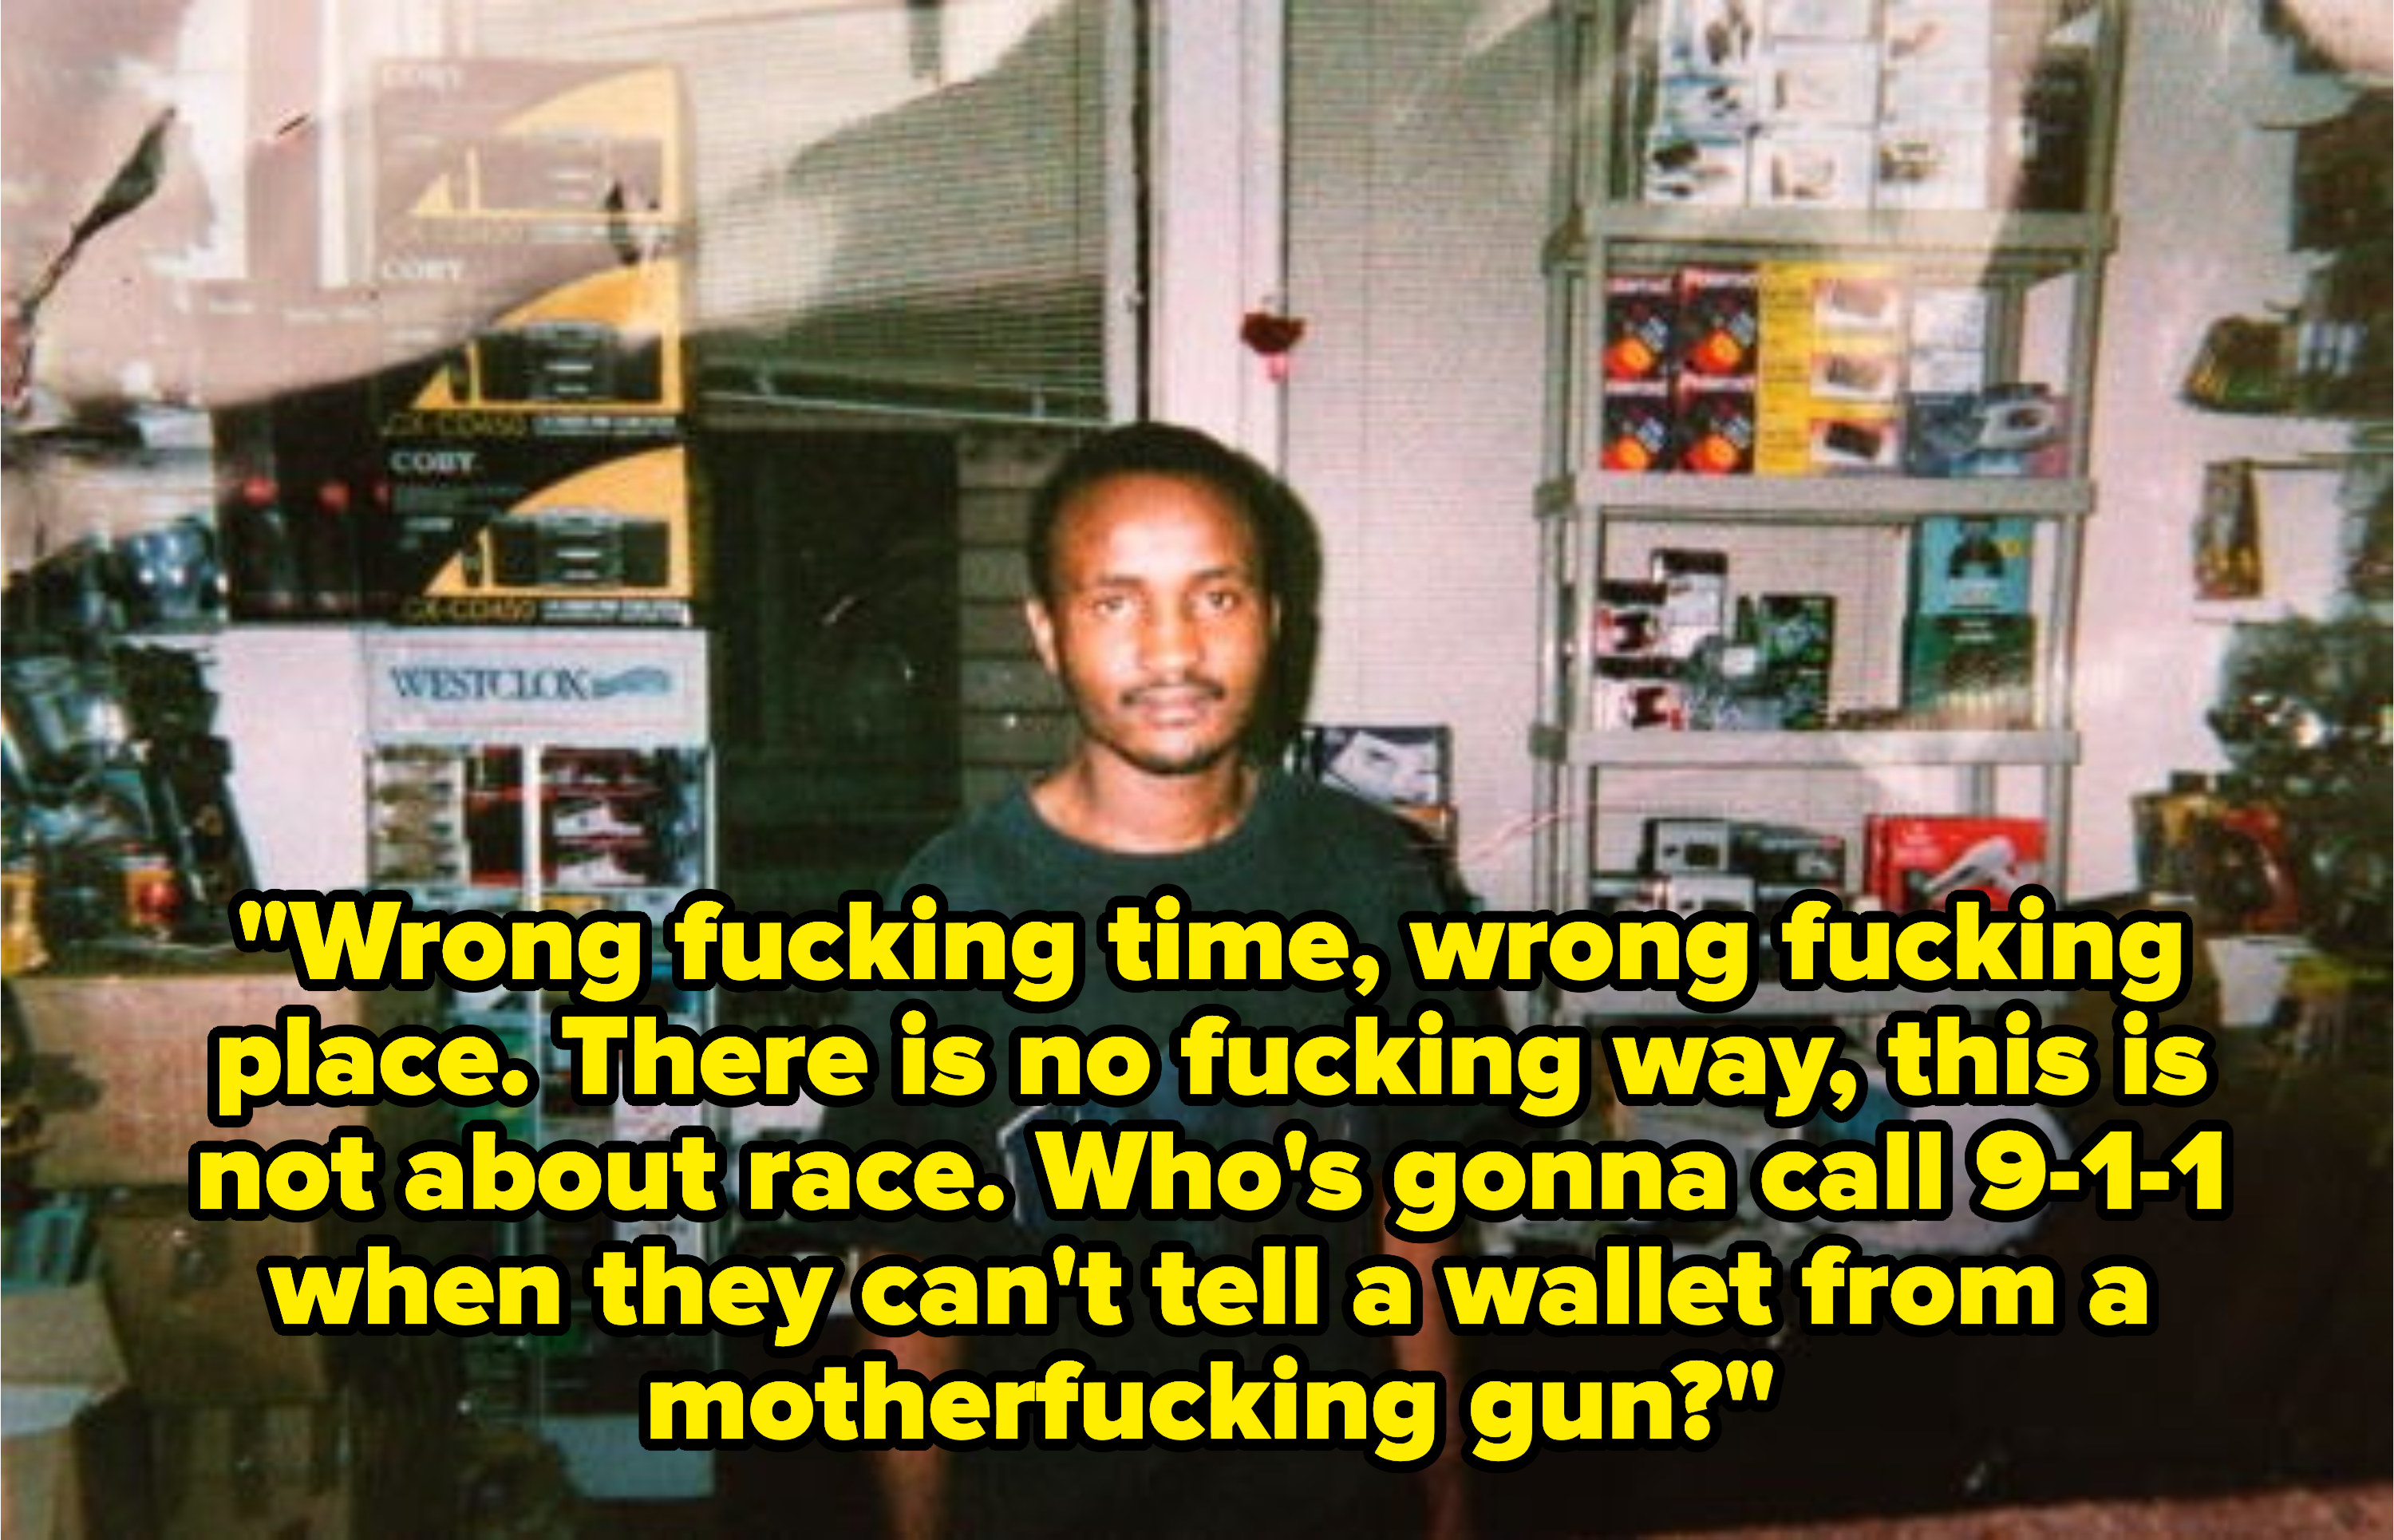 Lyrics: Wrong fucking time, wrong fucking place. There is no fucking way, this is not about race. Who's gonna call 9-1-1 when they can't tell a wallet from a motherfucking gun?